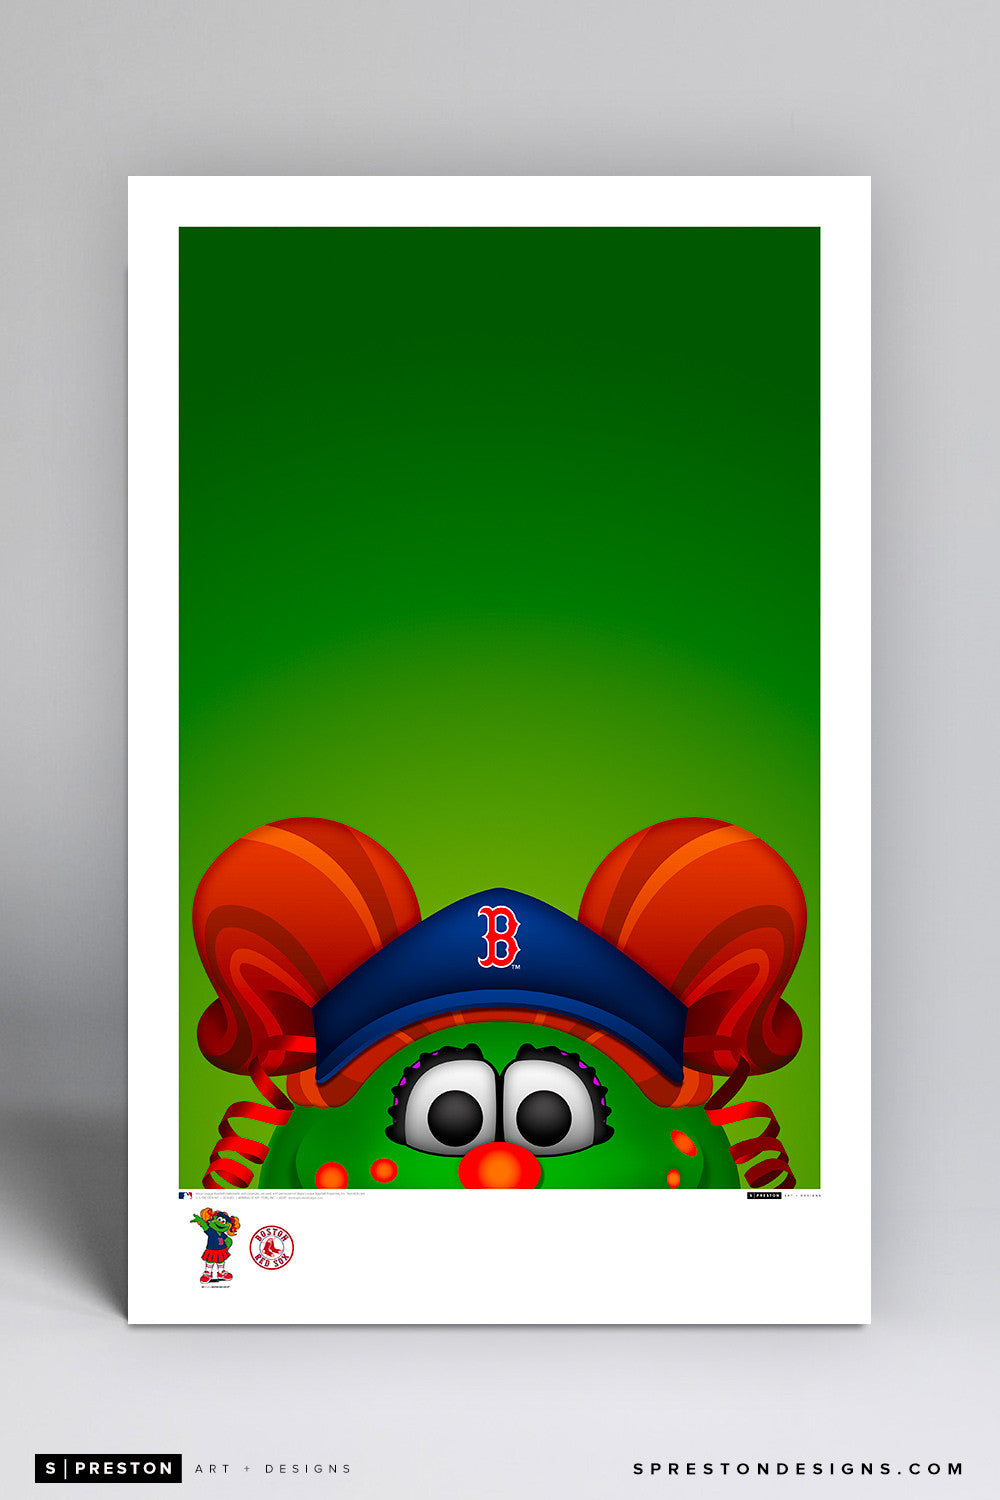 Minimalist Tessie The Green Monster Art Poster Art Poster - Boston Red Sox - S. Preston Art + Designs